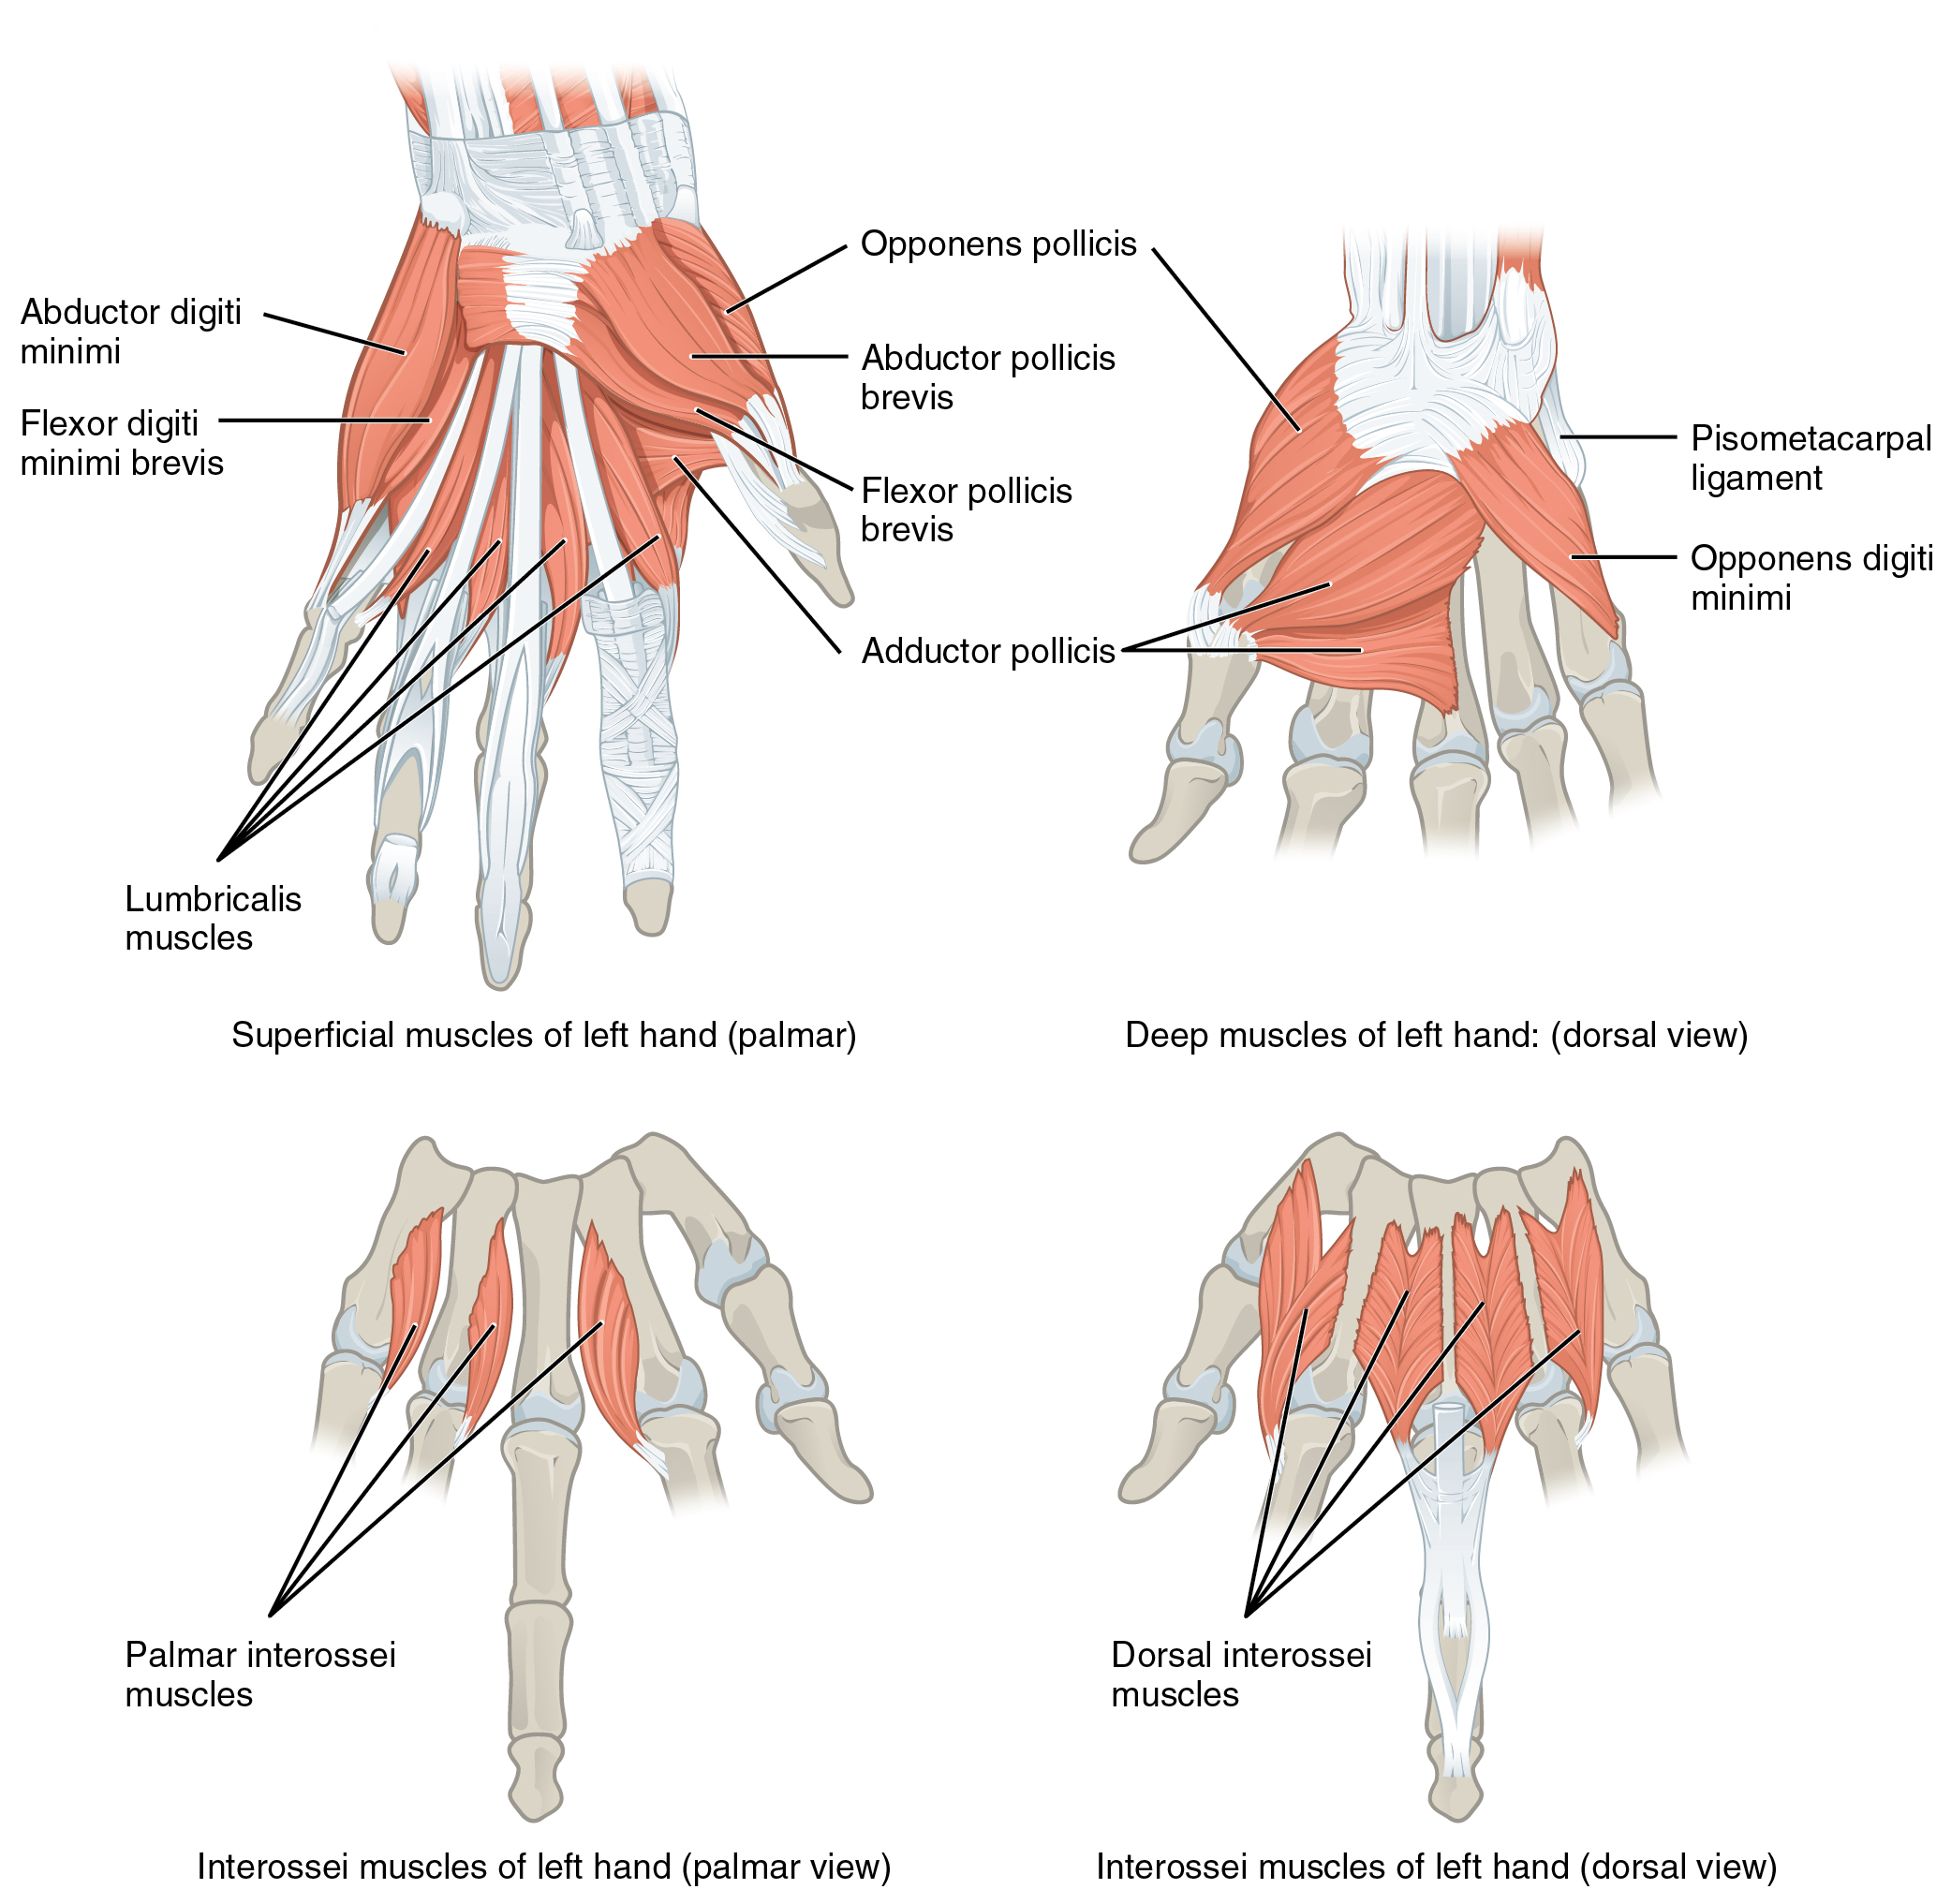 Intrinsic Muscles of Hand http://cnx.org/content/m46495/latest/